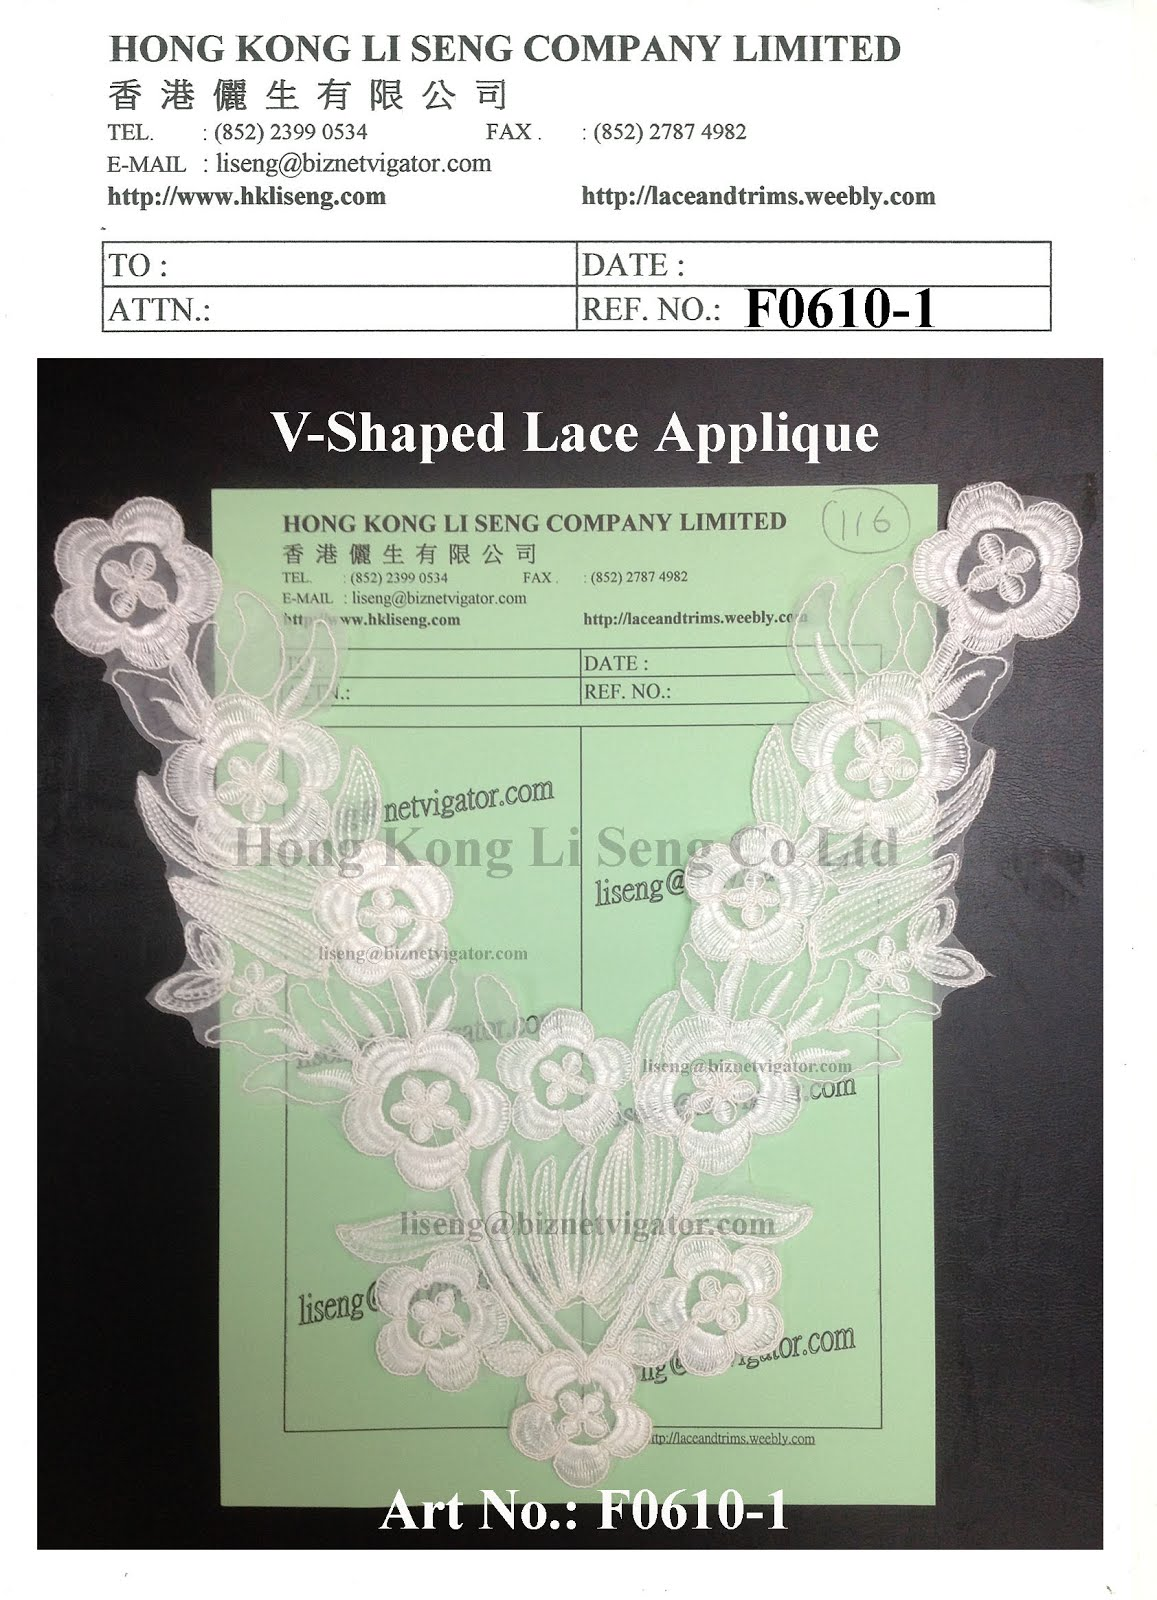 Event and Wedding Dress V-Shaped Lace Applique